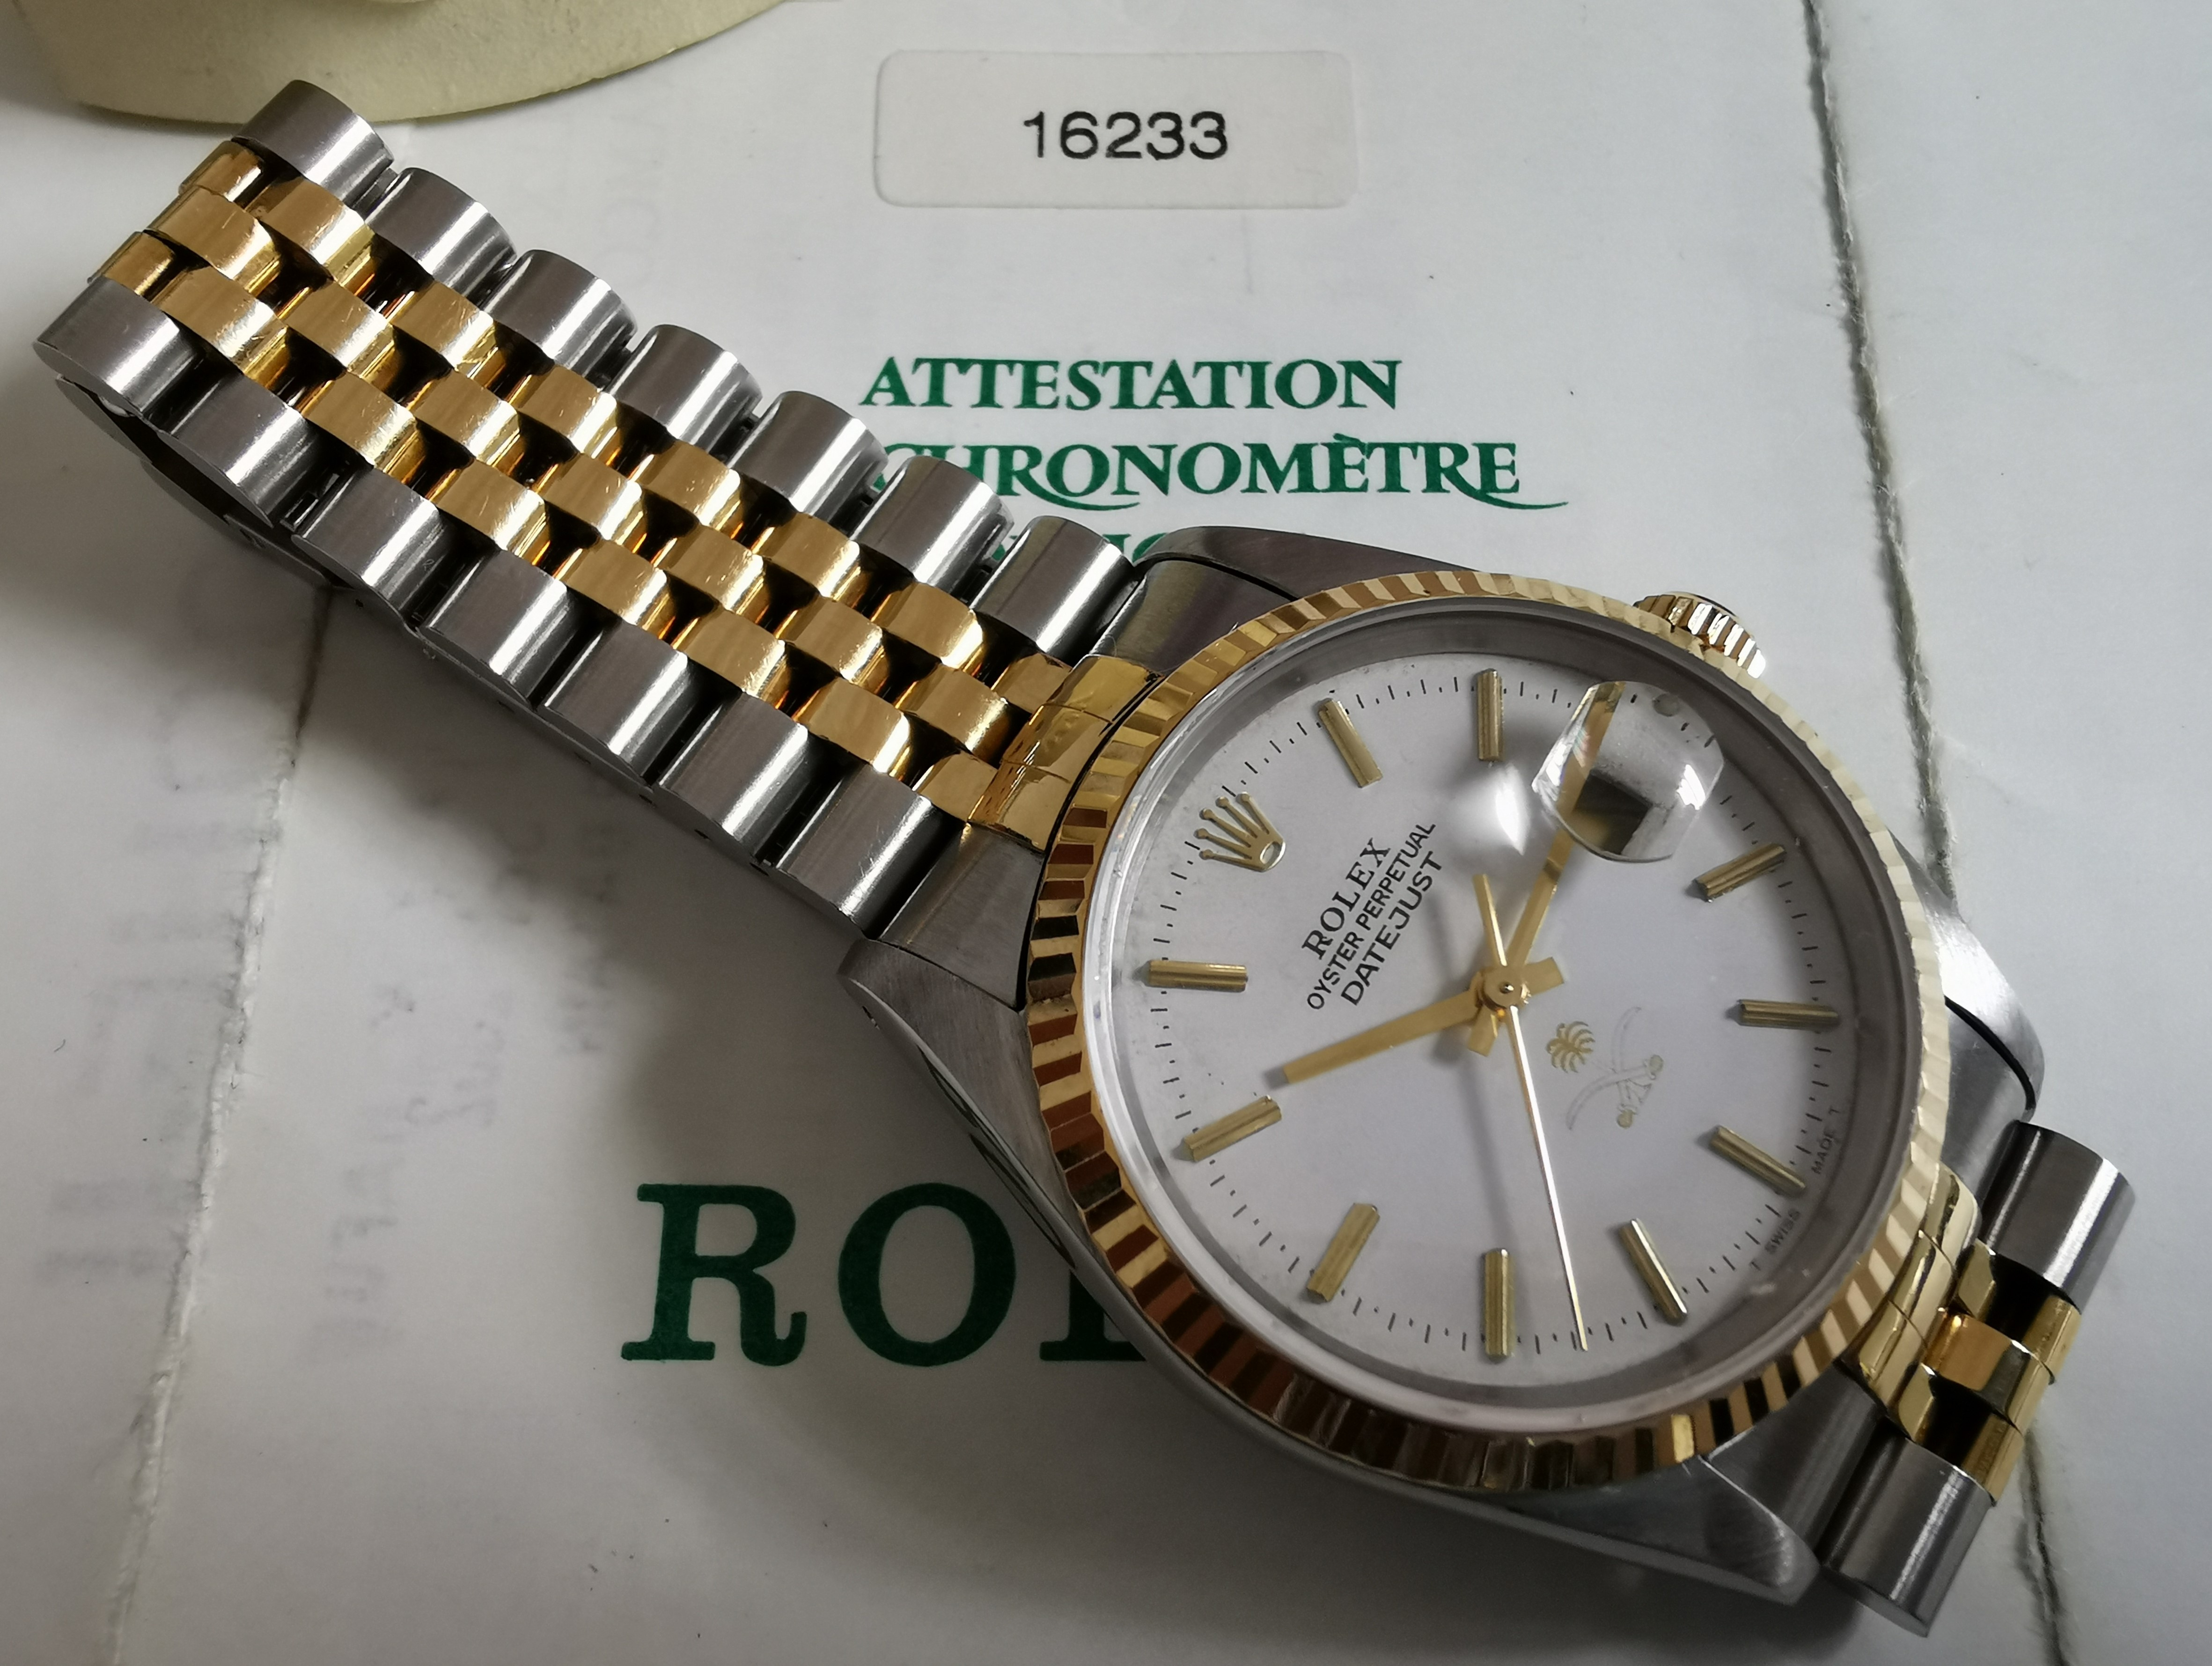 Rolex Datejust Rare Saudi Arabia Datejust Men's 2-Tone Watch 16233 Full Set | San Giorgio a Cremano